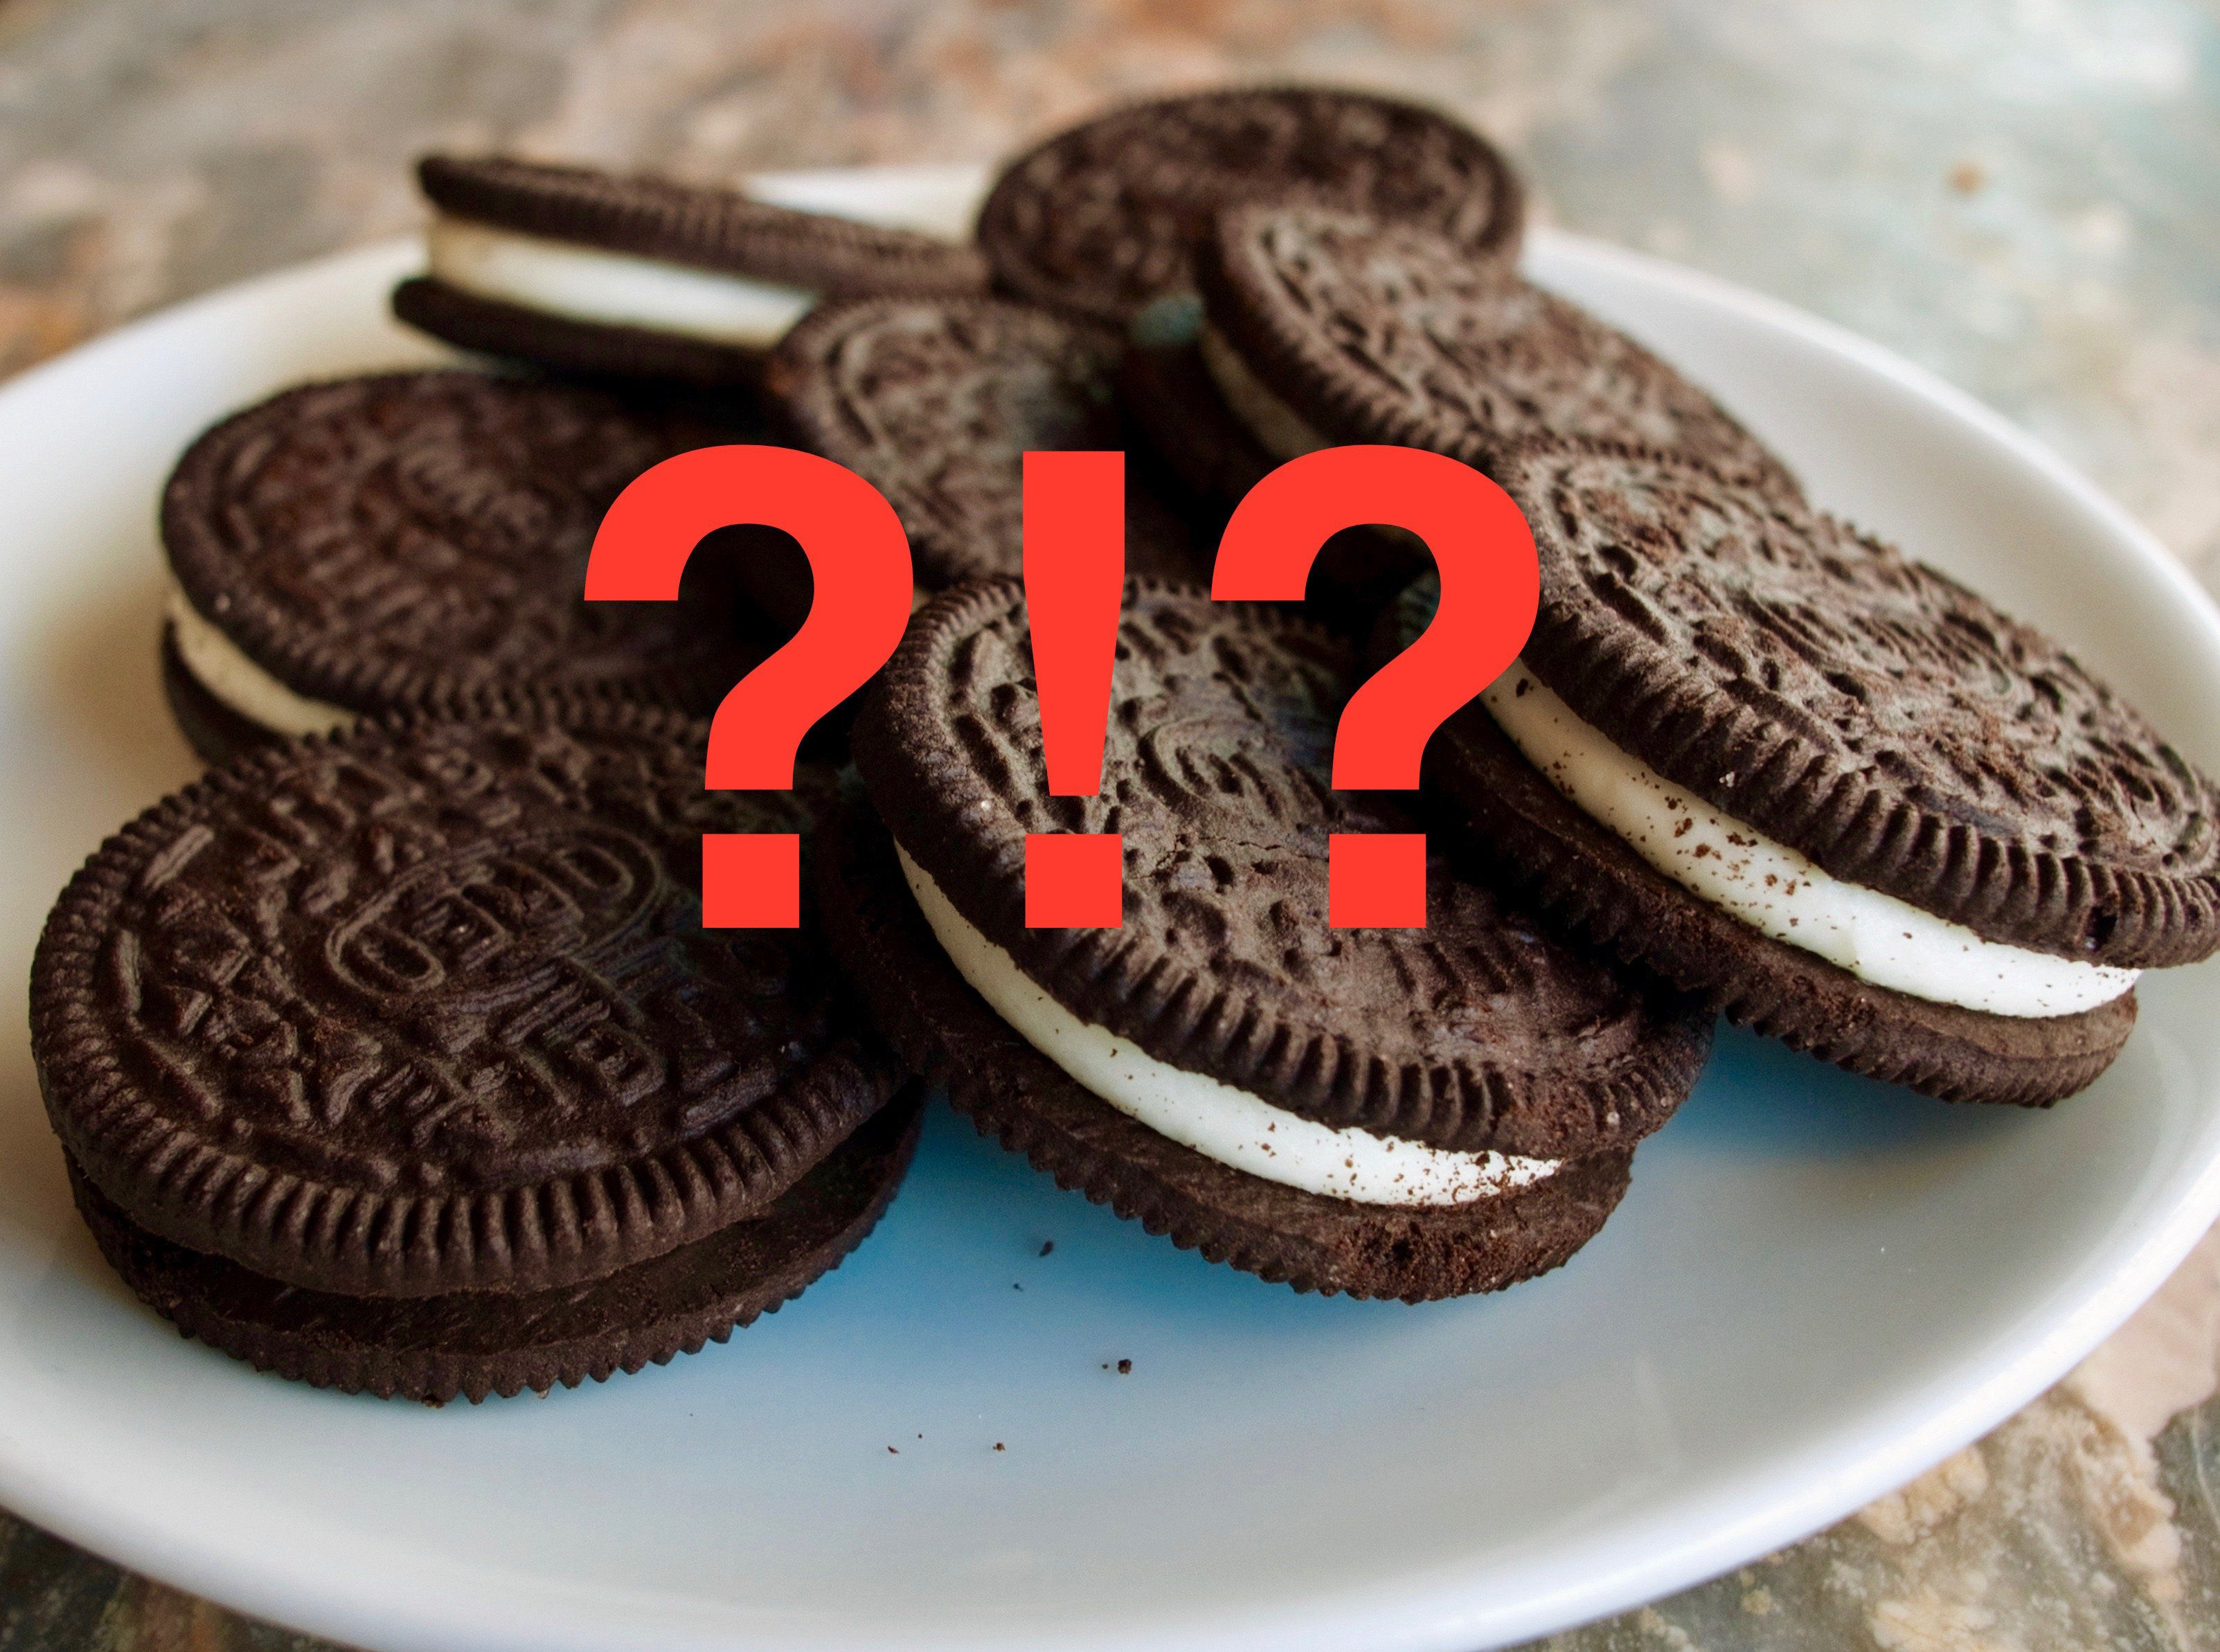 """A March 7, 2012 photo shows a plate of Oreo cookies in Washington, DC.  Technically they're """"chocolate sandwich cookies,"""" a baked concoction of sugar, vitamin-enriched flour, canola oil, high-fructose corn syrup and, at the bottom of the list of ingredients, chocolate. But the Oreo cookie -- first baked in New York city 100 years ago on March 6, 2012 -- is much more than that. It's an American icon, the best-selling cookie in the nation, with plenty of fans around the world to boot. AFP PHOTO/Mandel NGAN (Photo credit should read MANDEL NGAN/AFP/Getty Images)"""